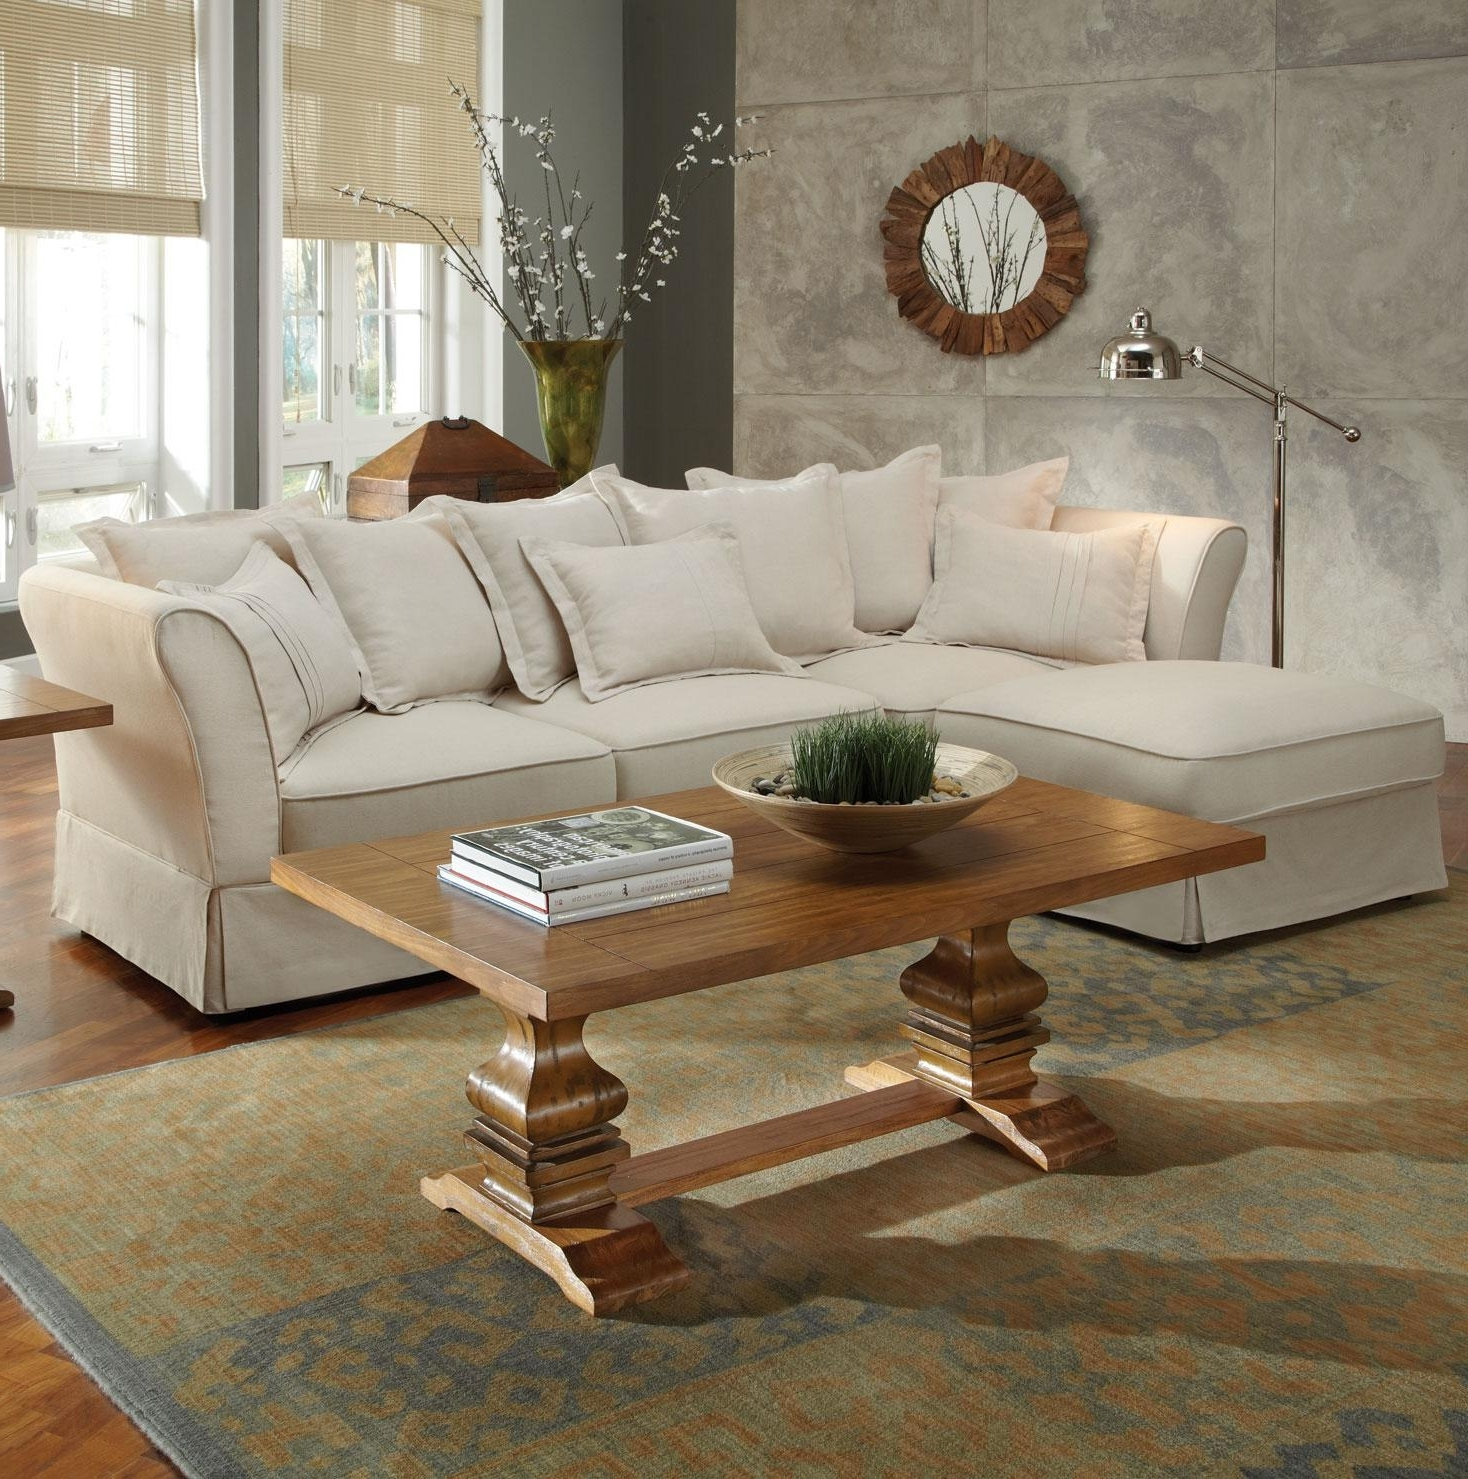 New Orleans Sectional Sofas For Most Up To Date Design Furniture Stationary Living Rooms (View 9 of 20)